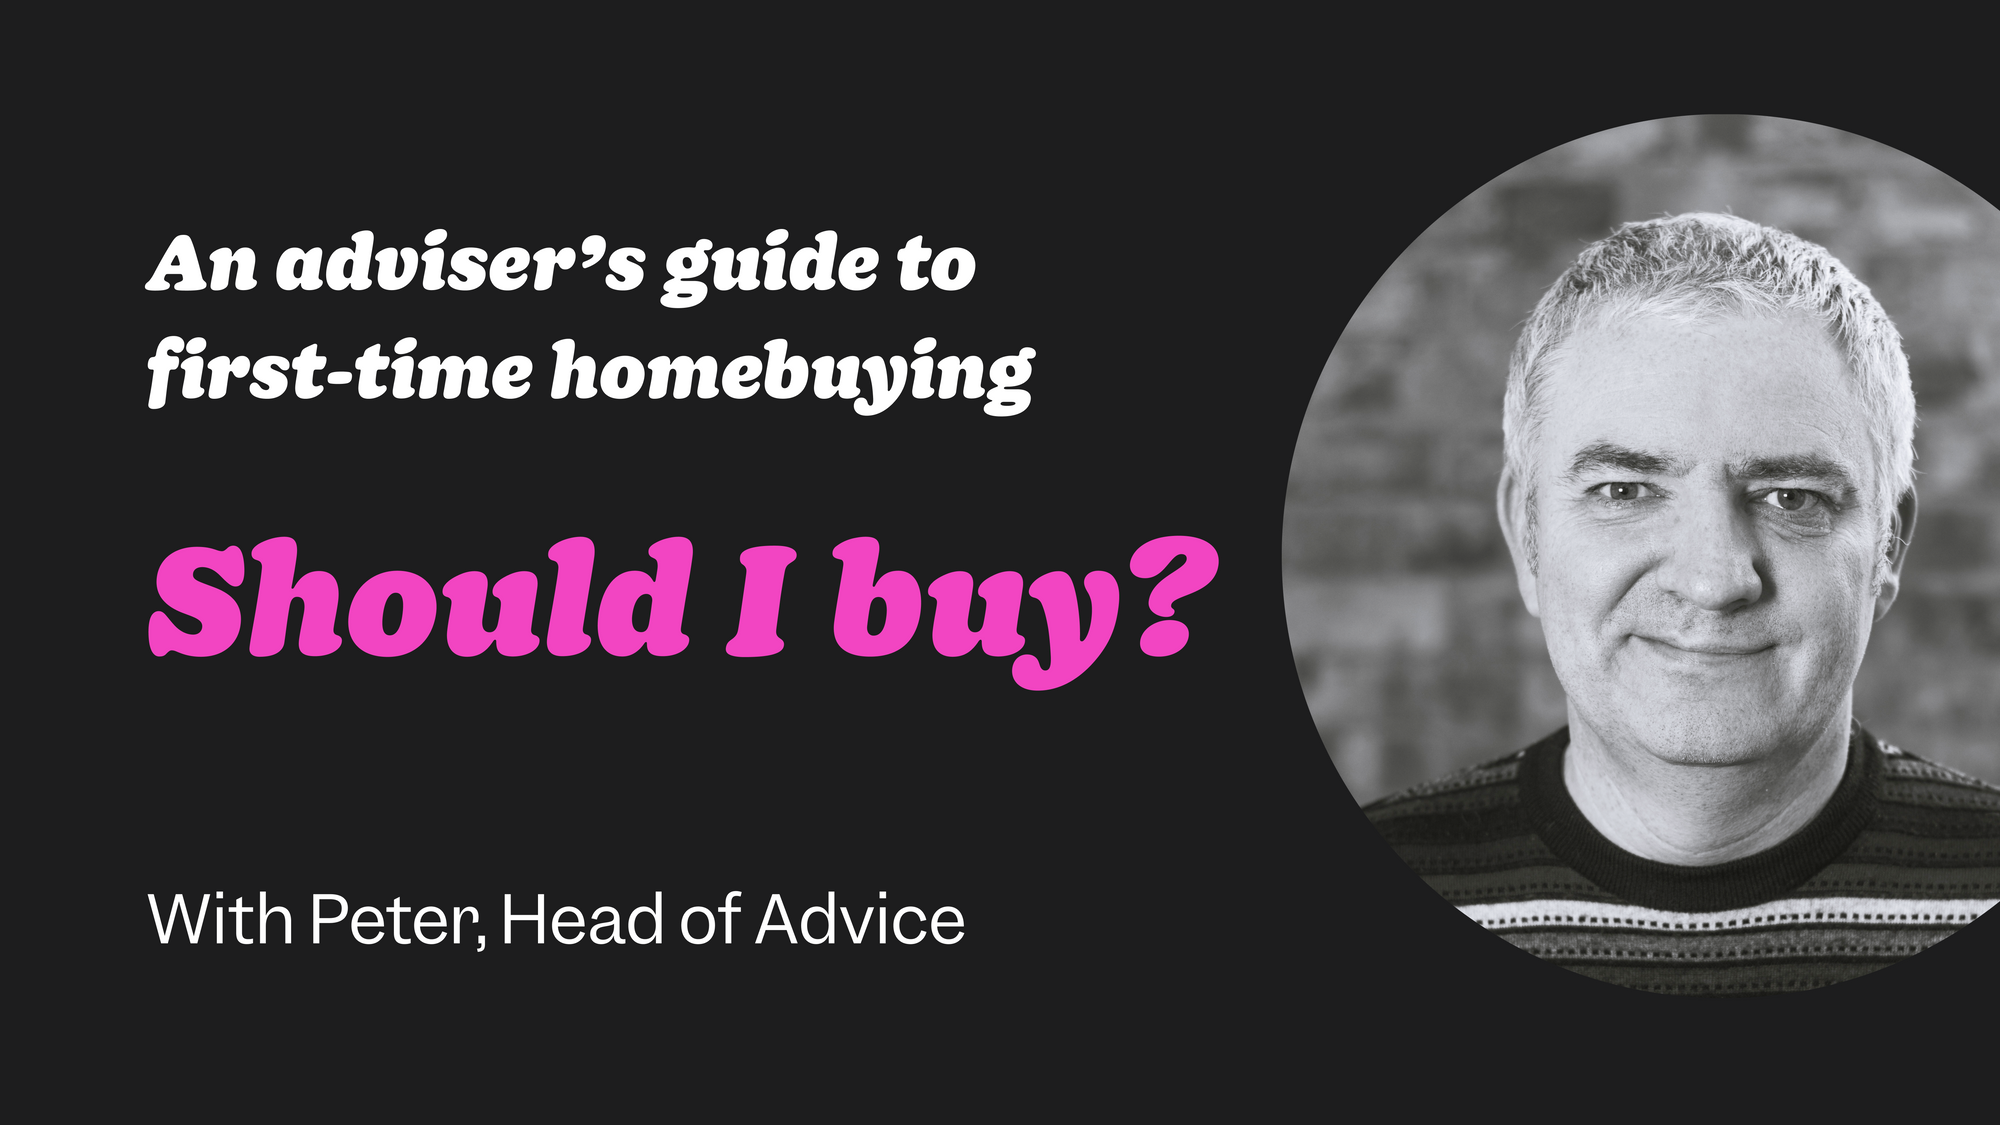 First-time buyer guide #1: Should I buy?